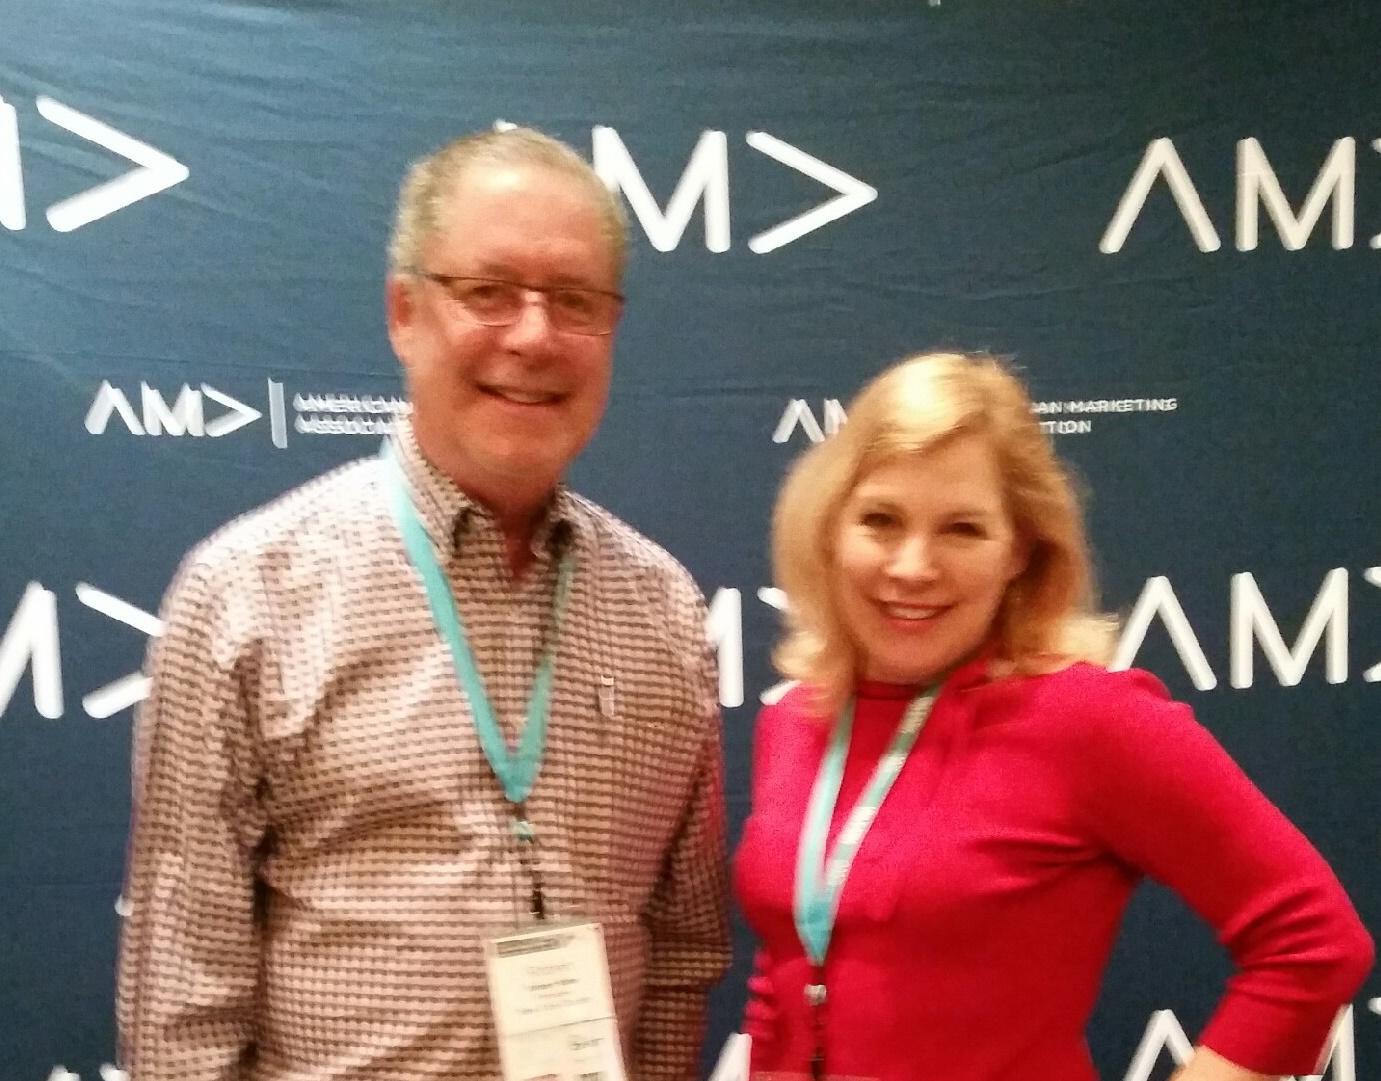 american marketing association leadership summit